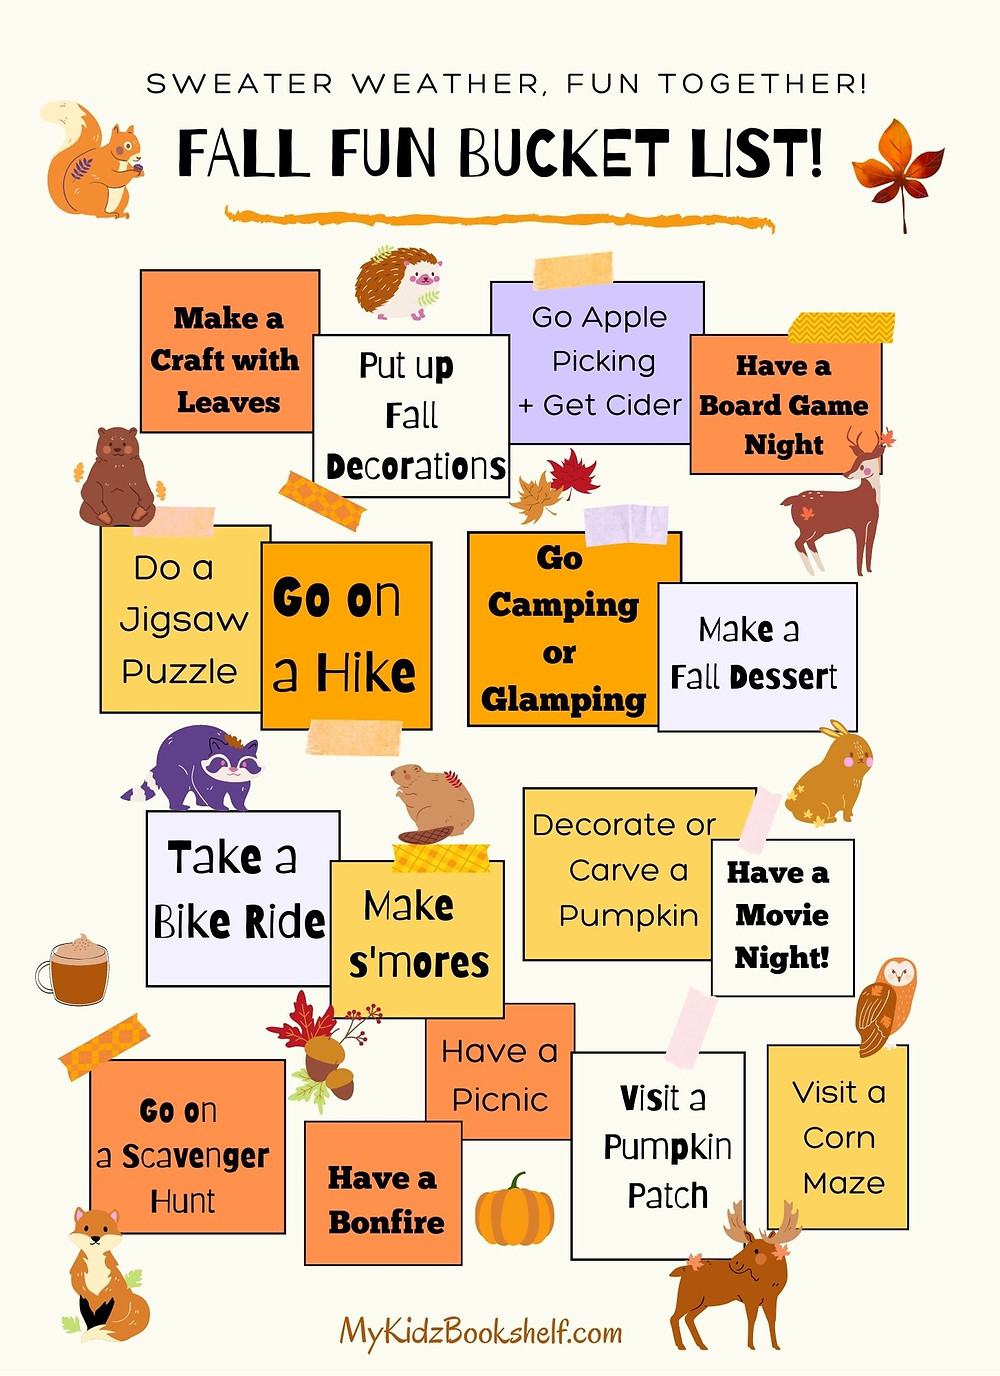 Fall Fun Bucket List in a message board style with ideas for fall fun!